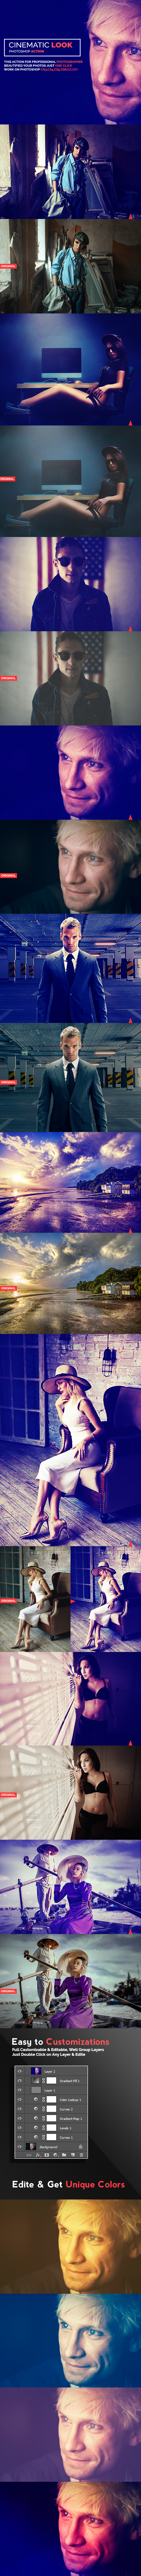 Cinematic Look Photoshop Action - Actions Photoshop